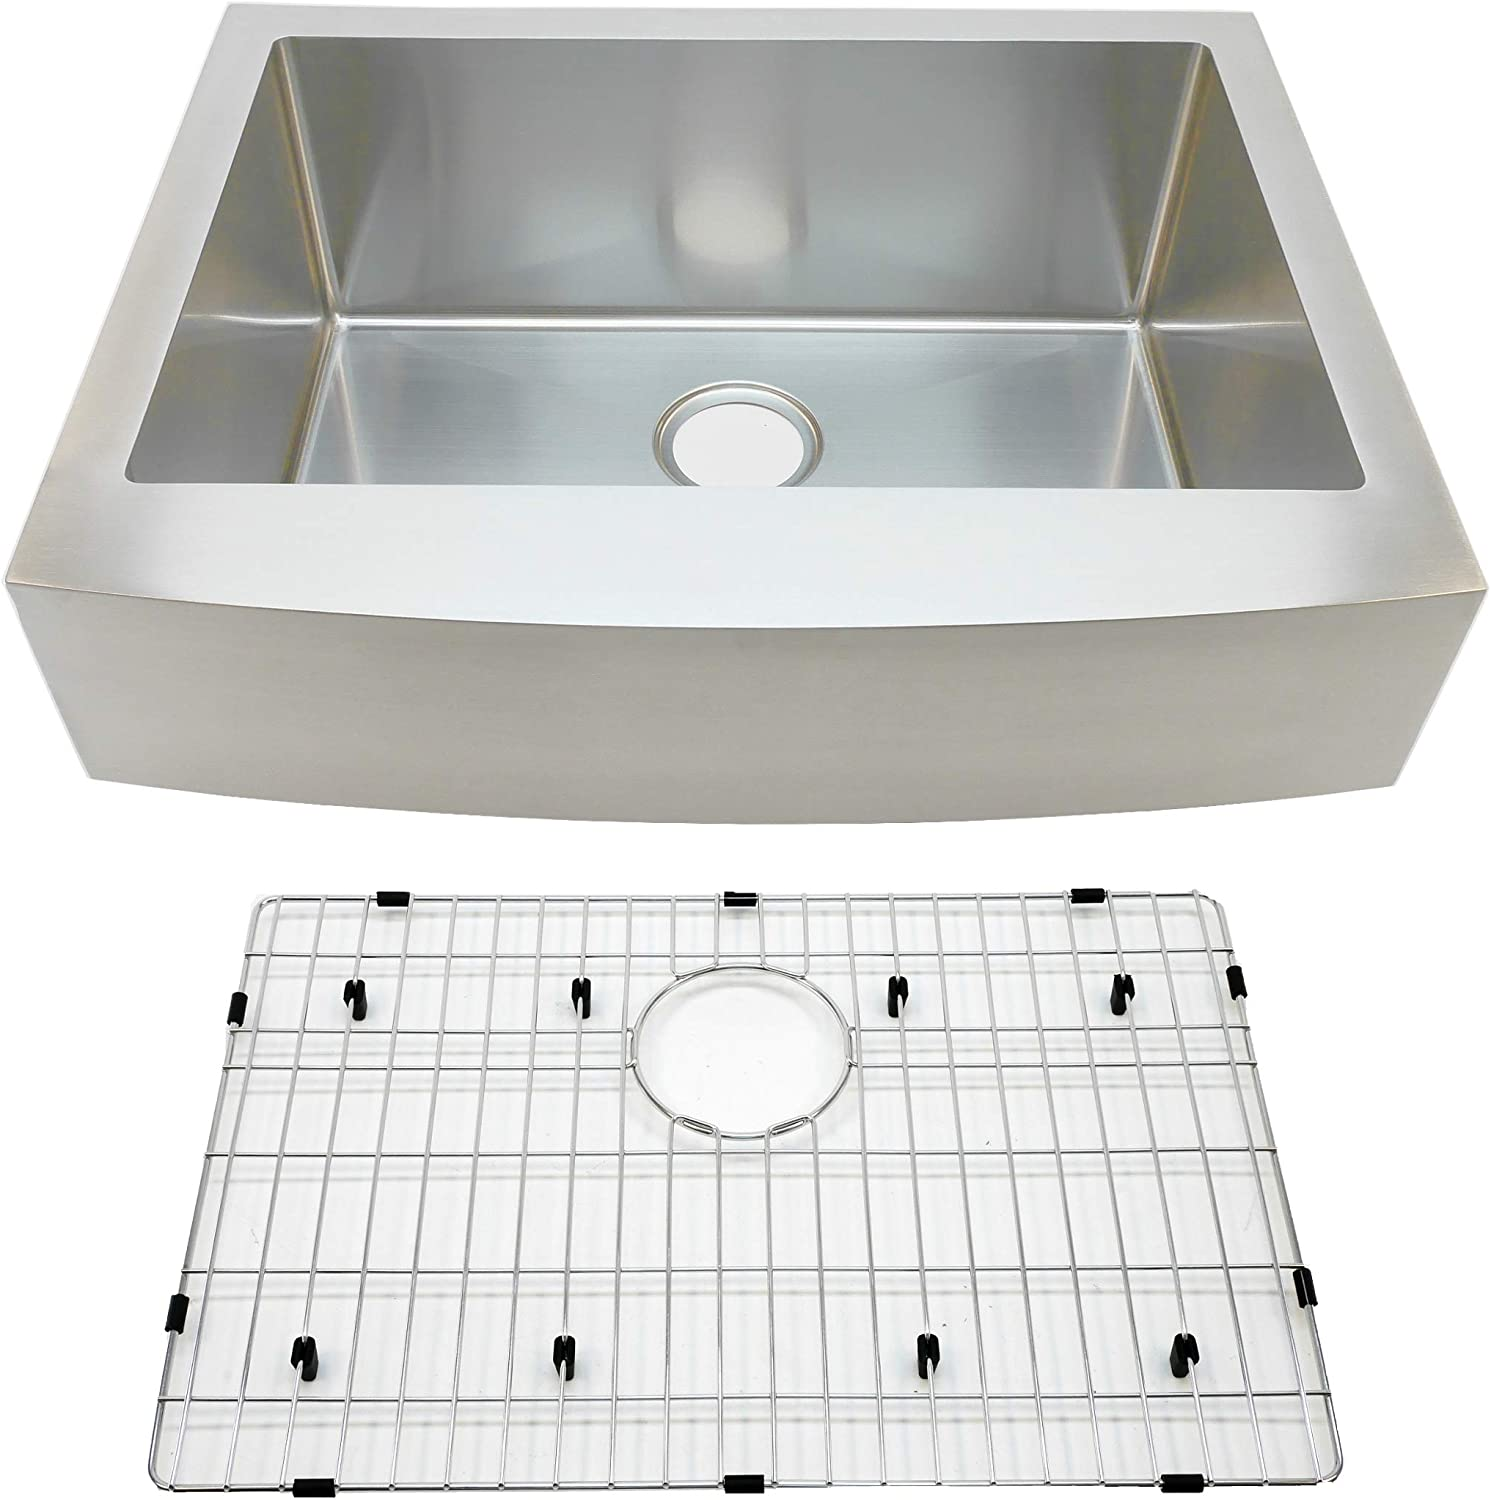 Auric Sinks 30 Farmhouse Curved Retro-Fit Front Apron Single Bowl Sink, Premium Stainless Steel, SCAR-16-30-retro SGL